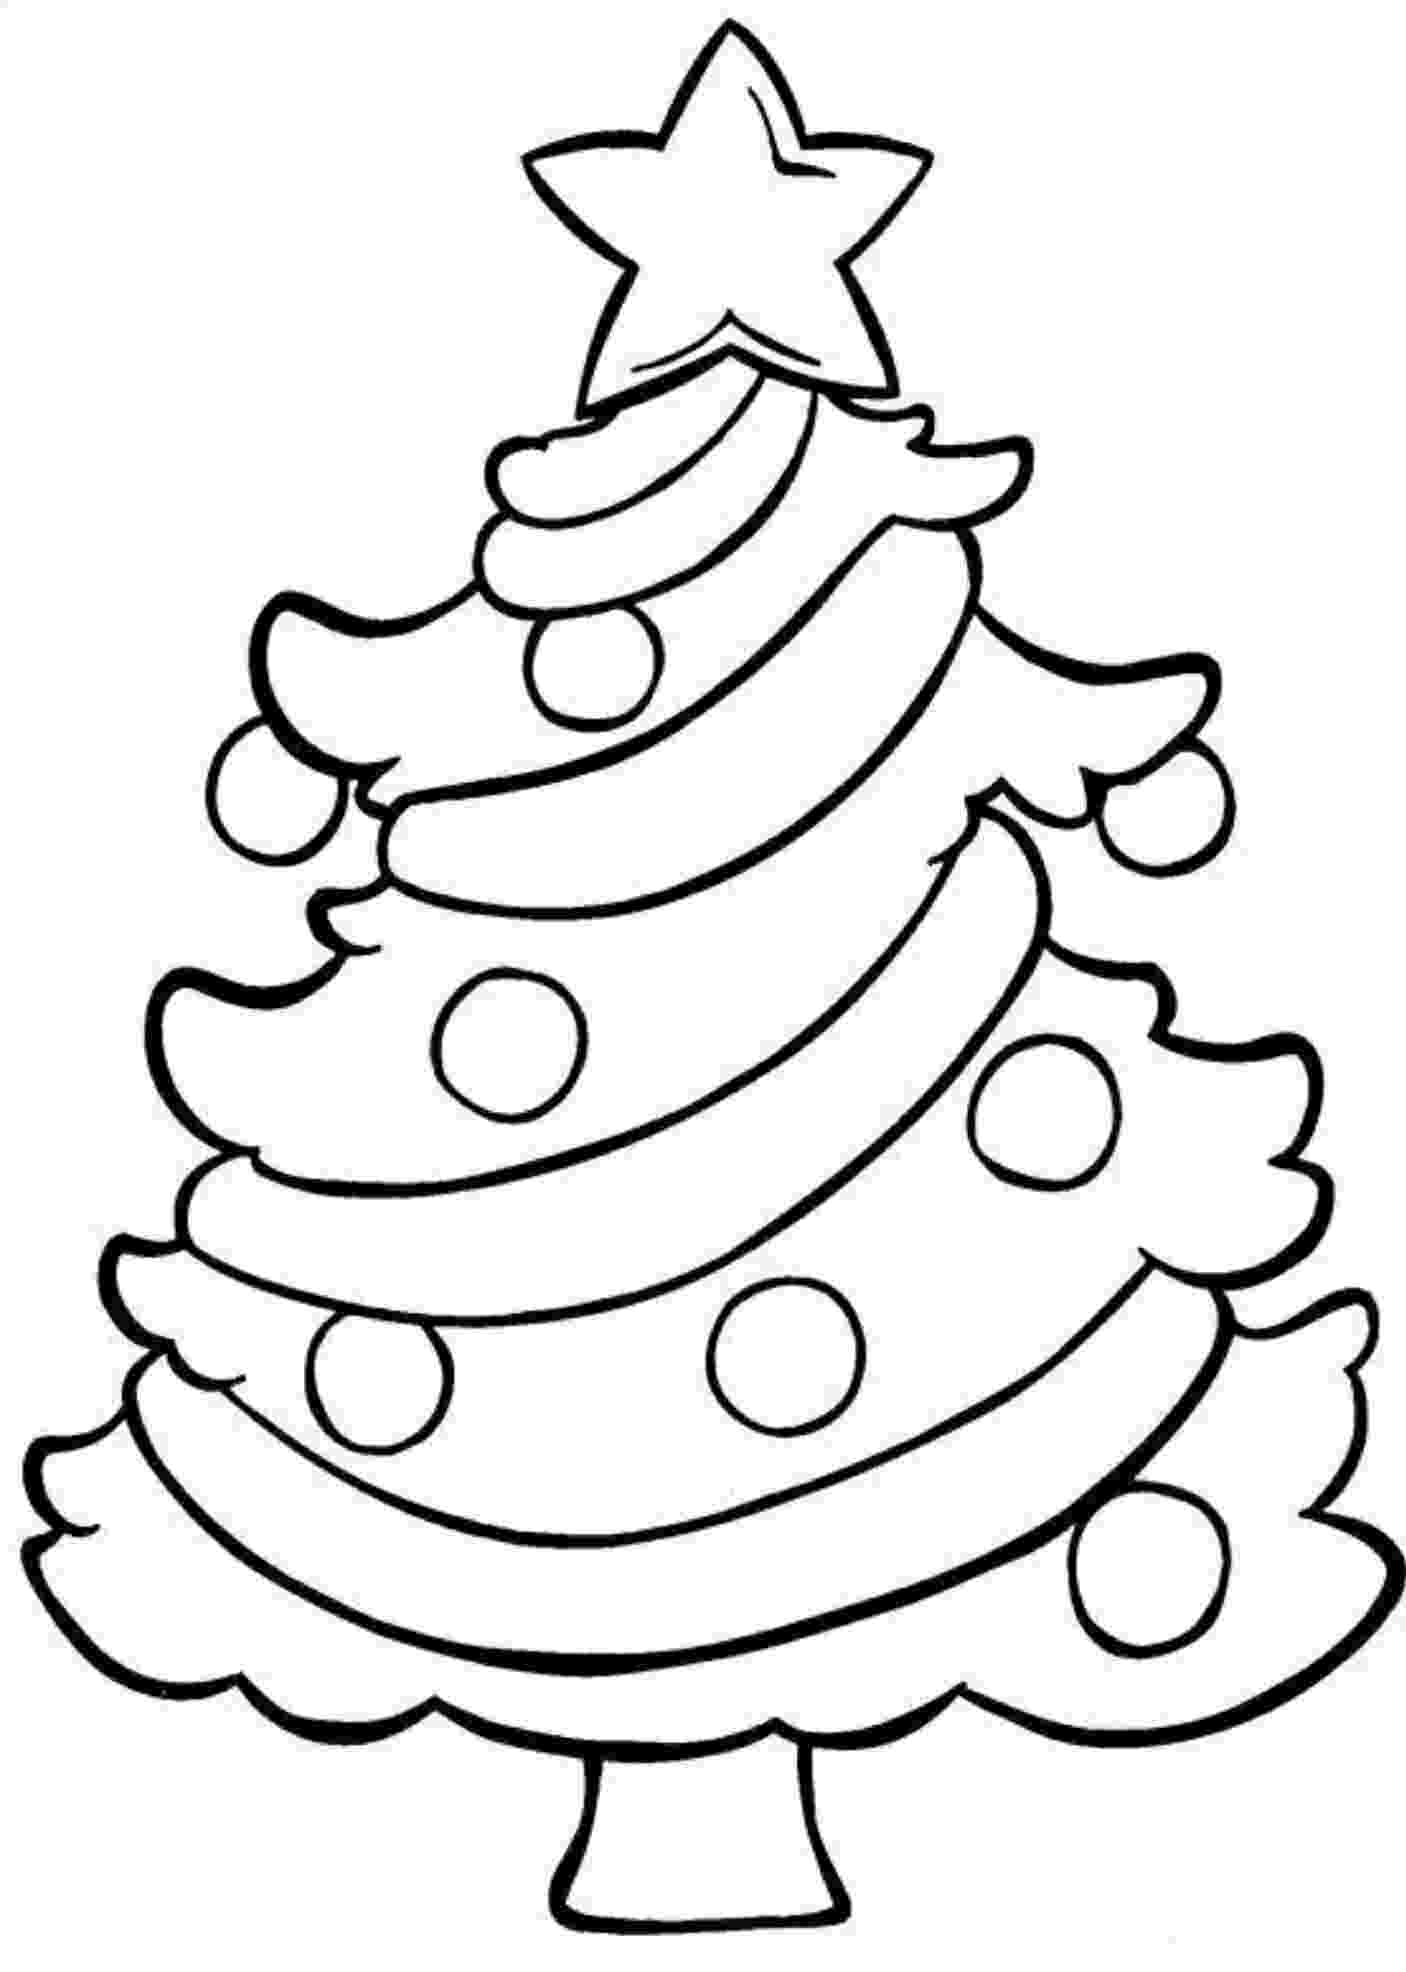 chirstmas coloring pages pin by esther on pre k stuff printable christmas coloring chirstmas pages